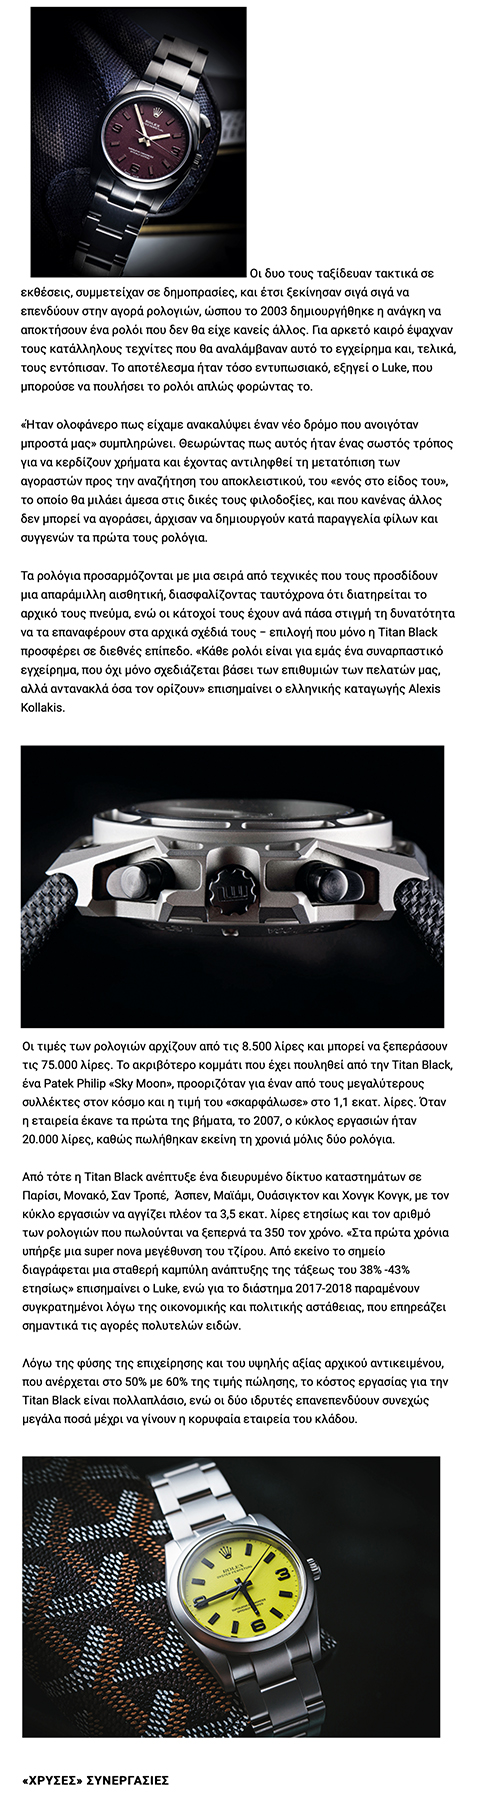 article_fortunegreece_-_p2.jpg